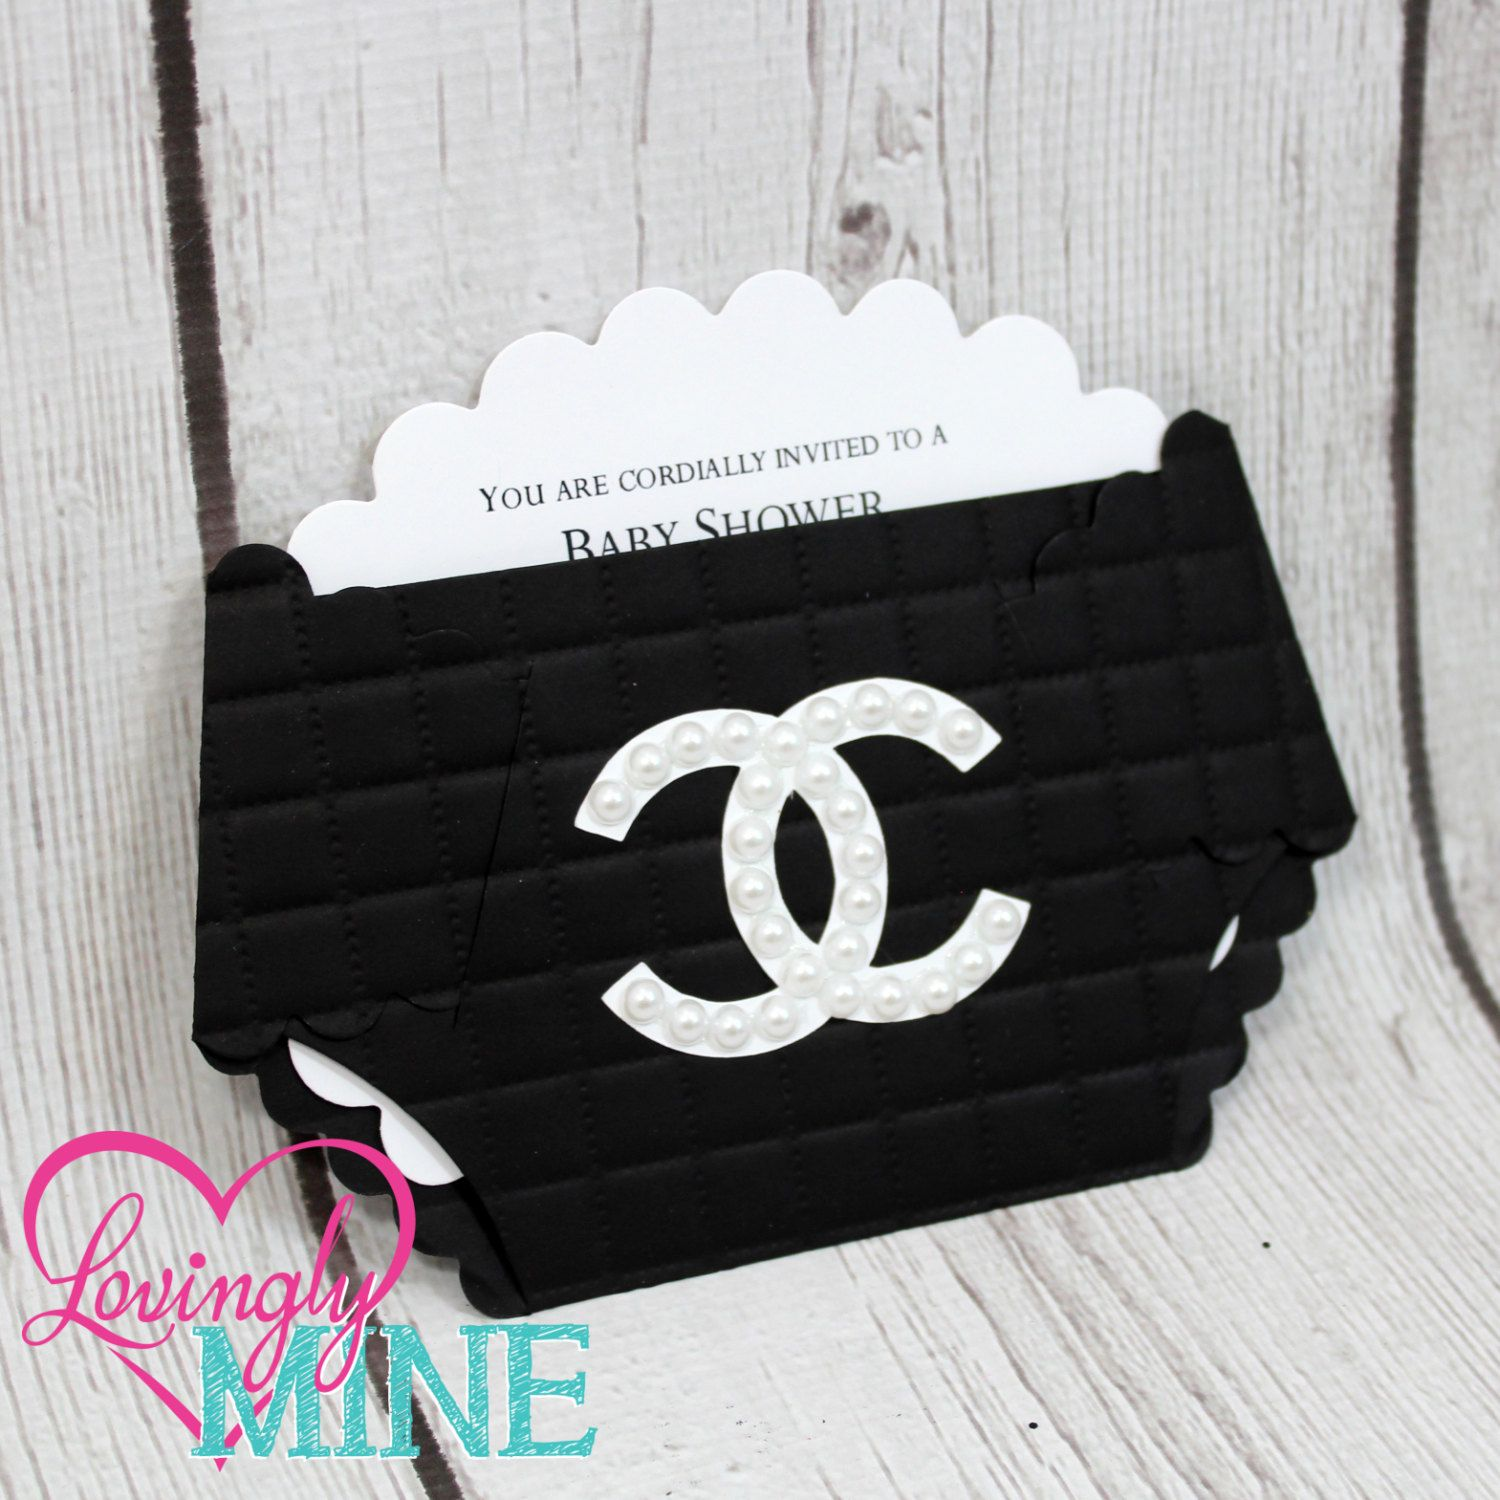 Coco Chanel Baby Shower Invitations Diaper Shape in Tuft Black and ...